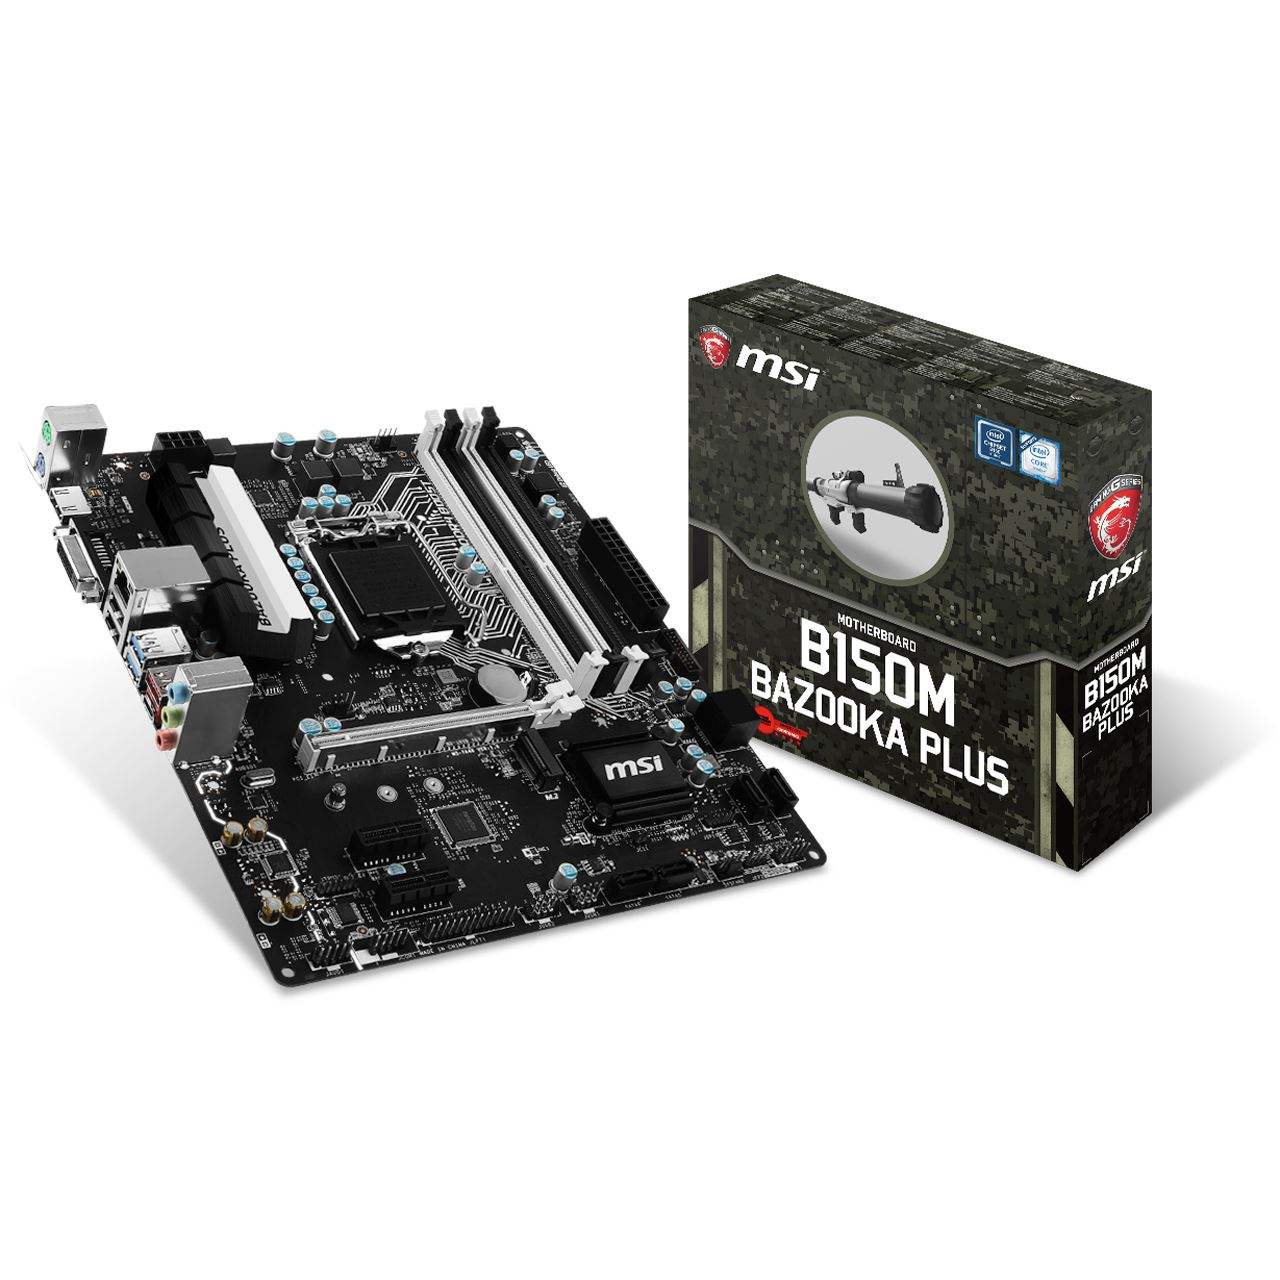 MSI B150M BAZOOKA Plus Intel B150 So1151 Dual Channel